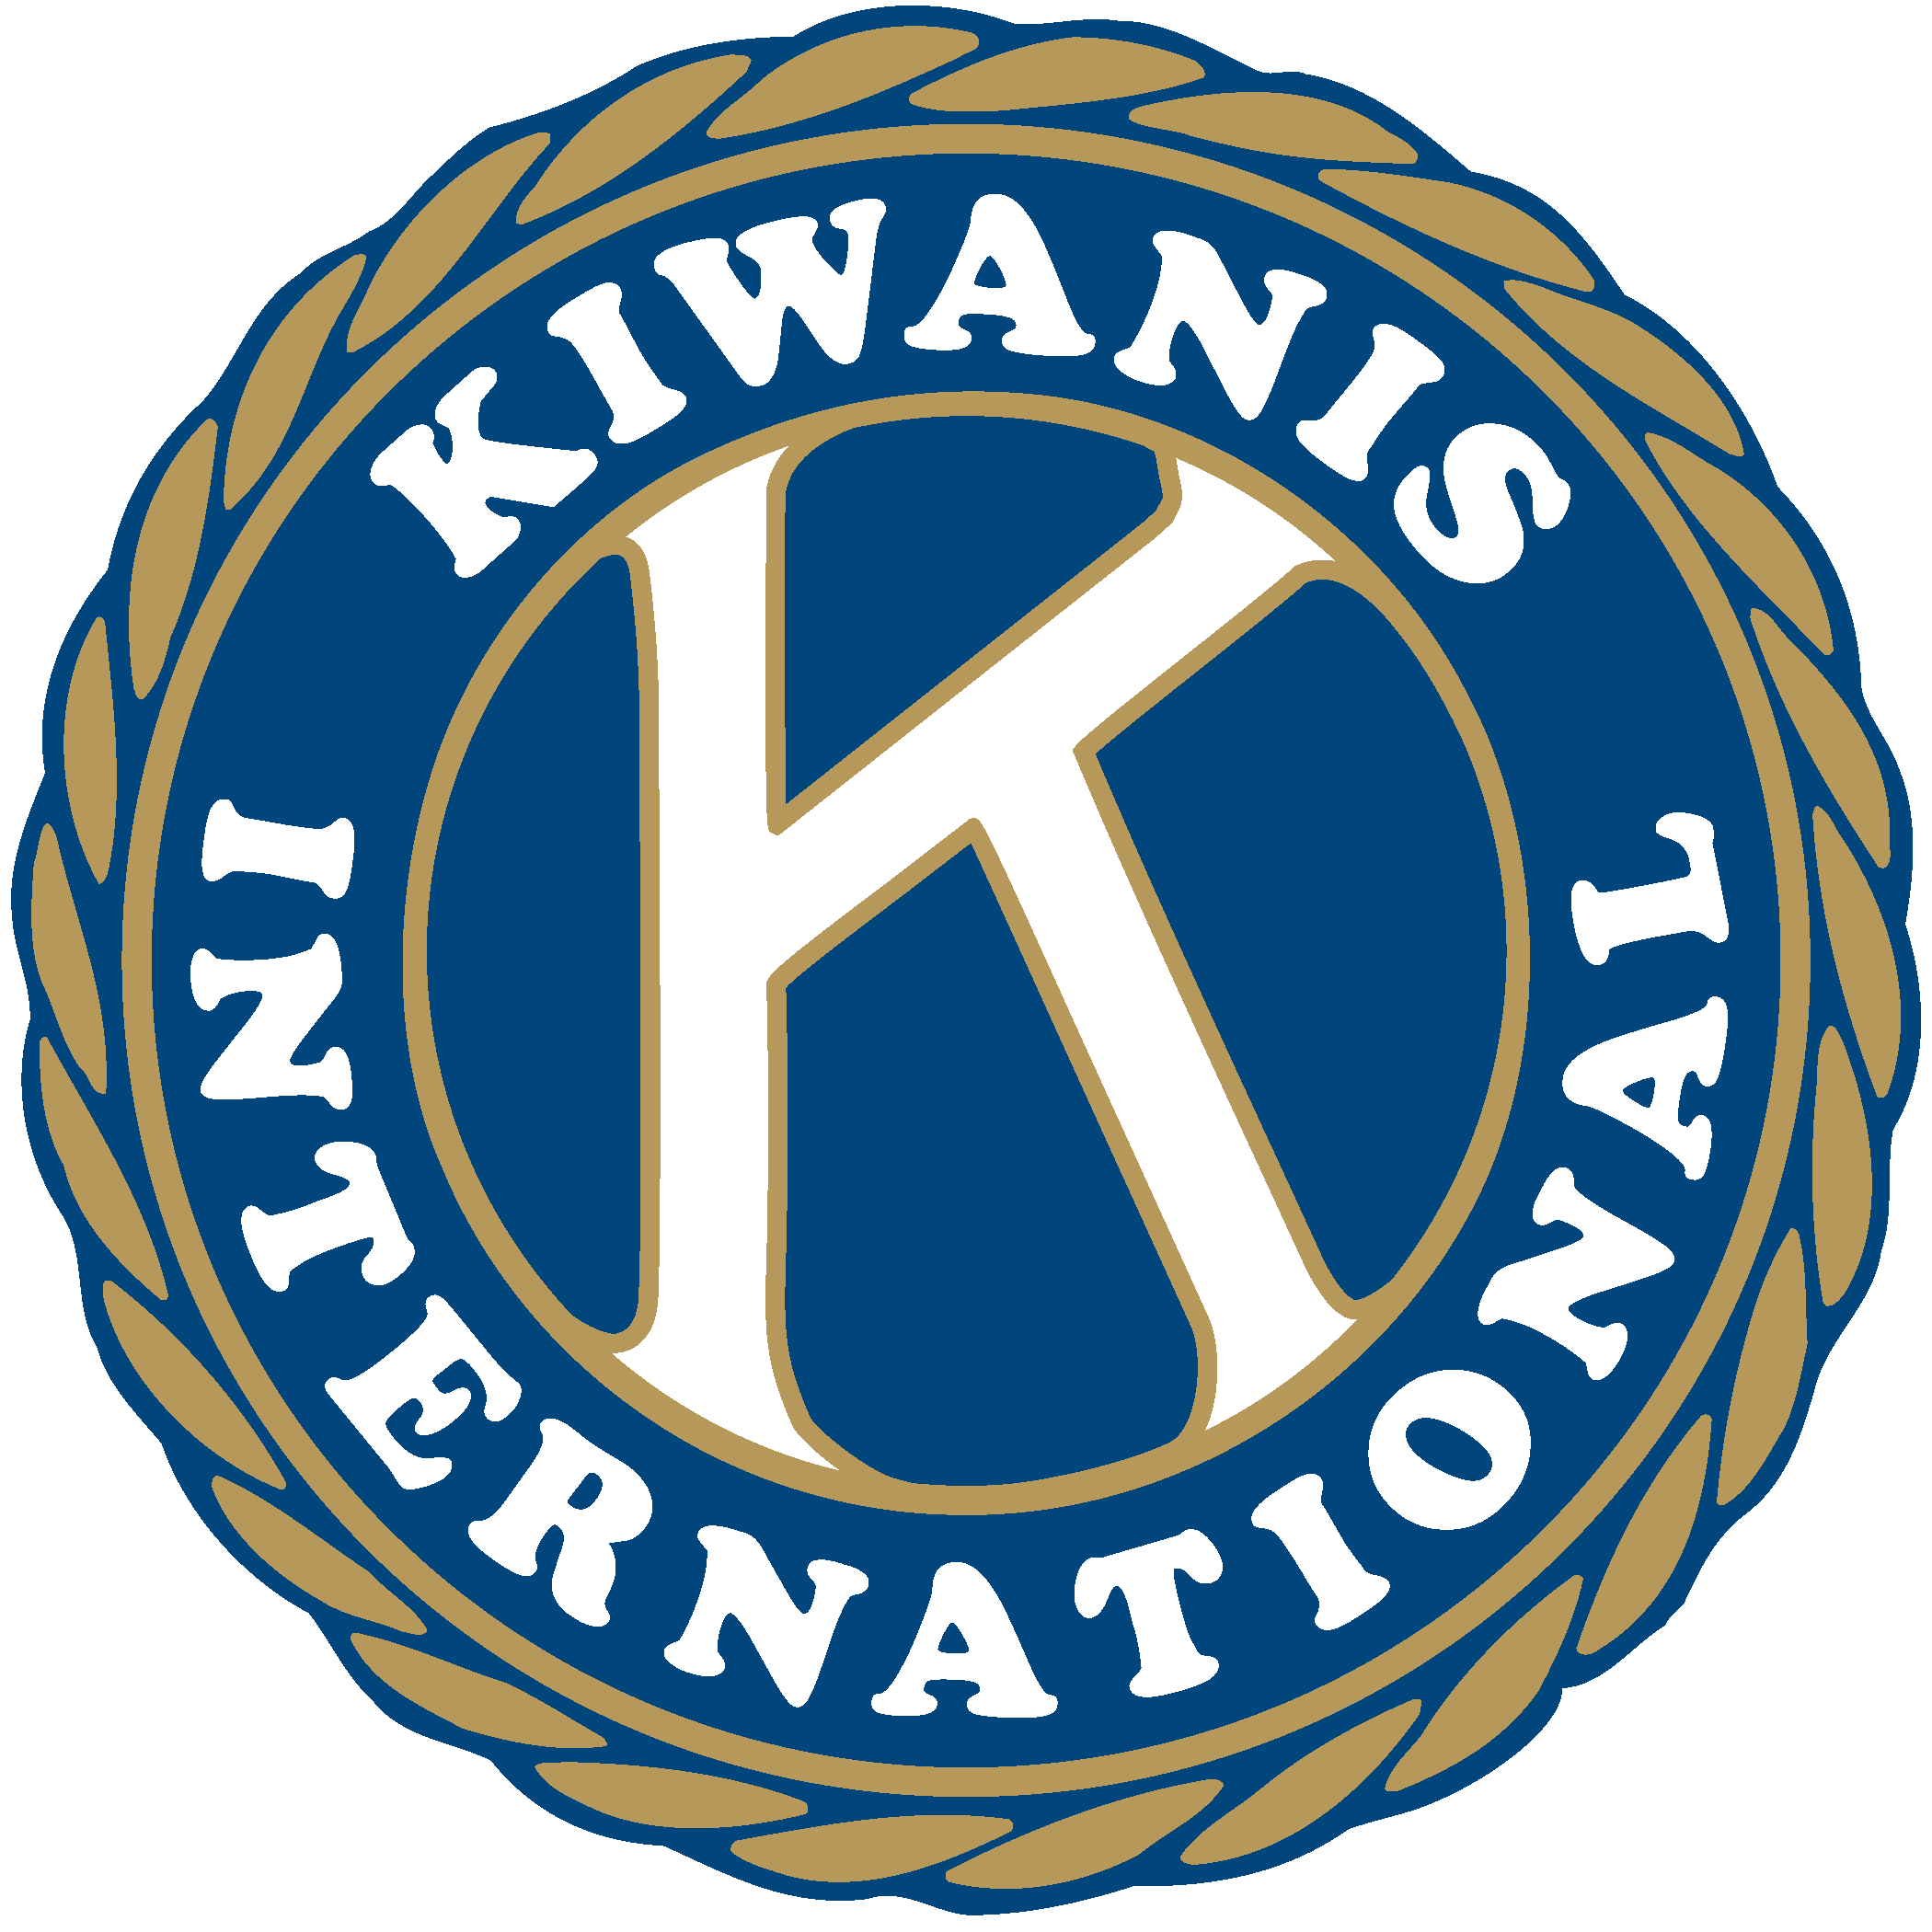 Kiwanis Club of the Valley Foundation